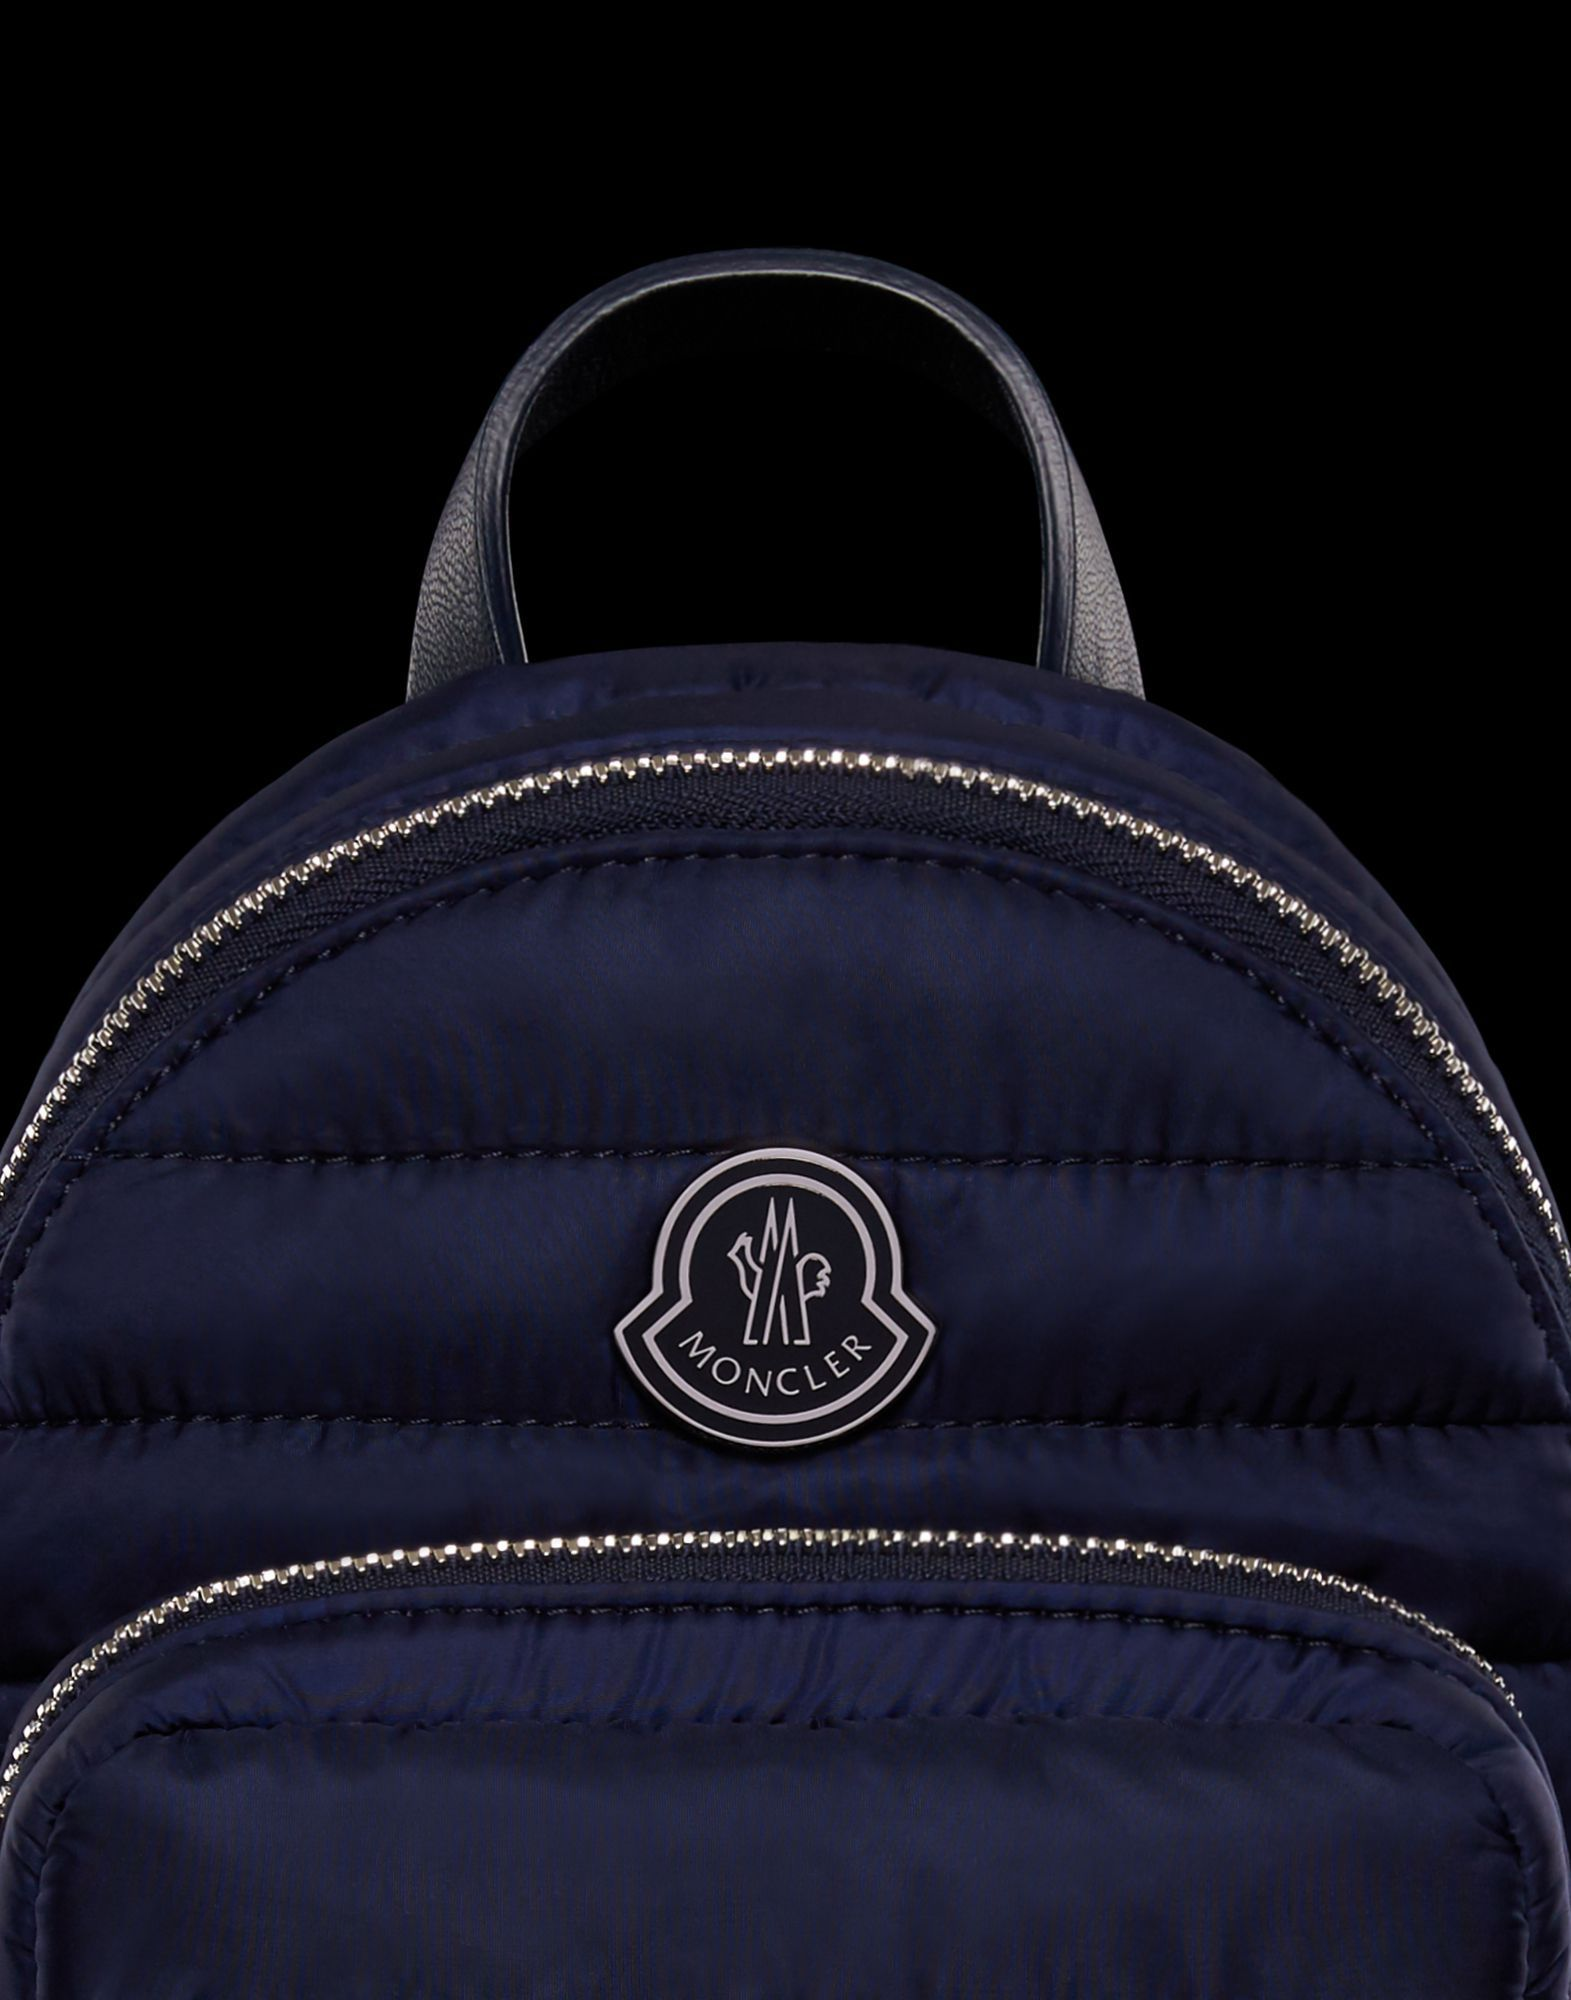 422de5596 MONCLER Shoulder Bags 17/18 winter MONCLER KILIA SMALL _ Navy 3 ...